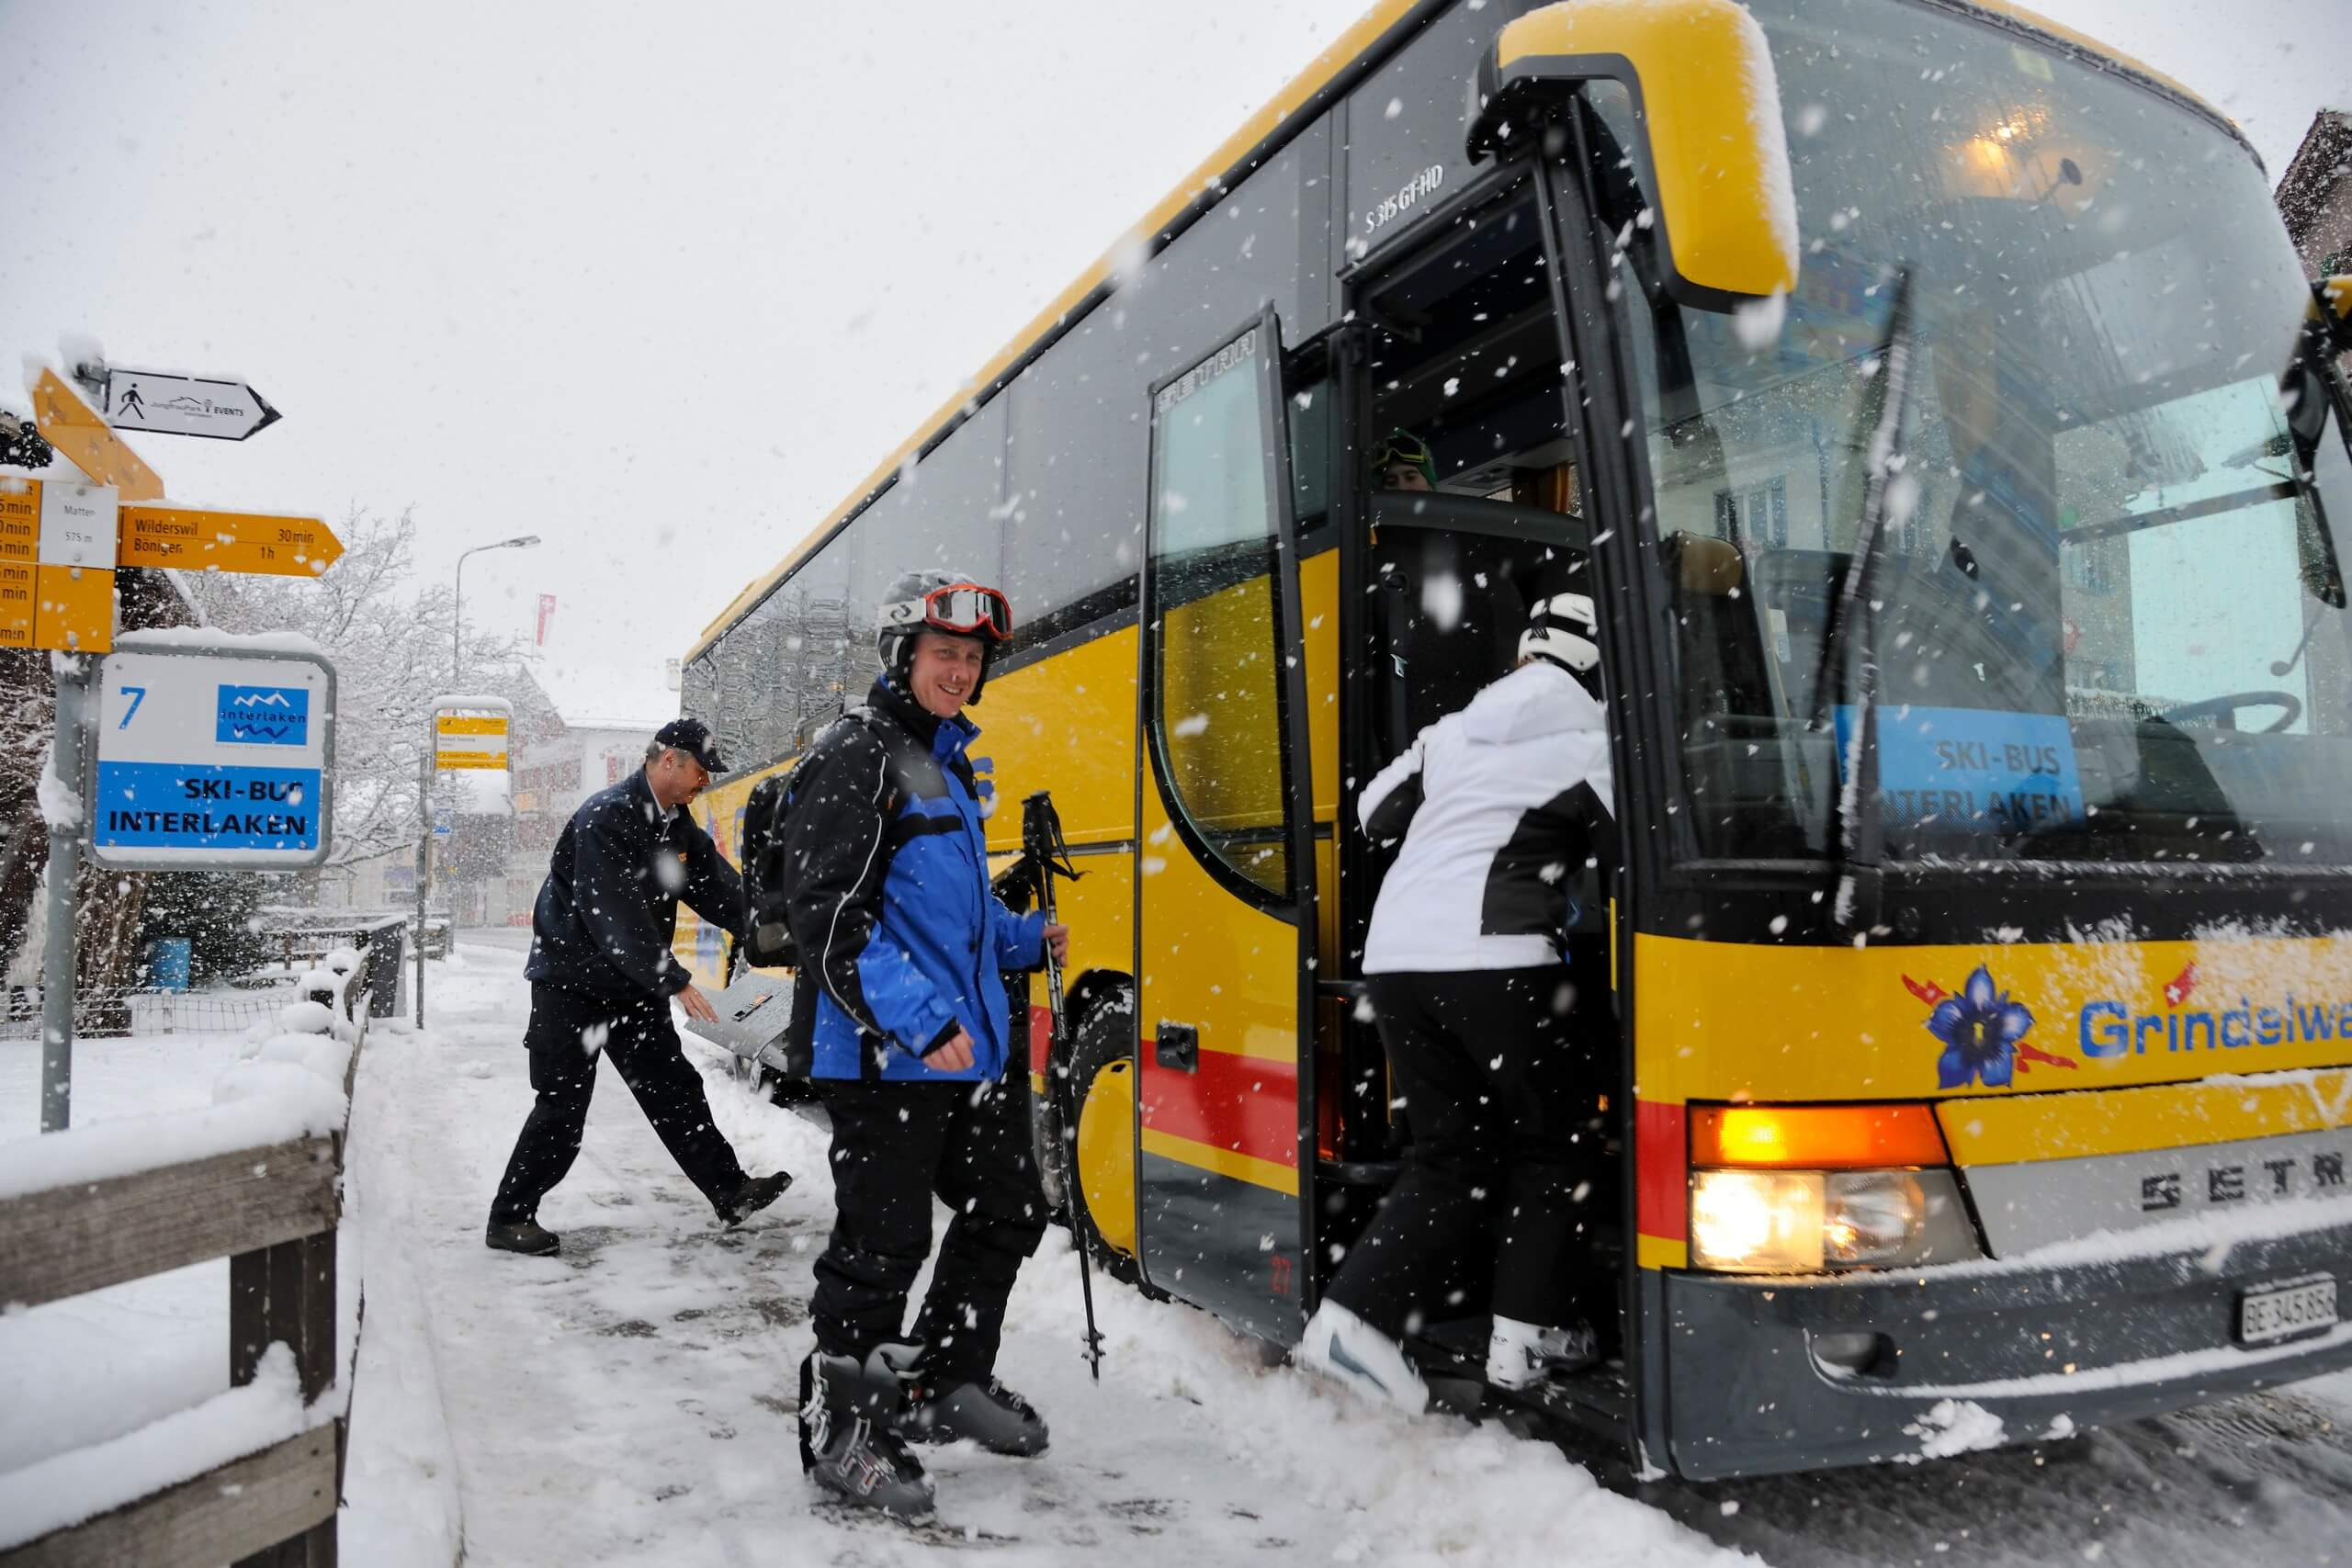 interlaken-skibus-winter-haltestelle-matten-einsteigen